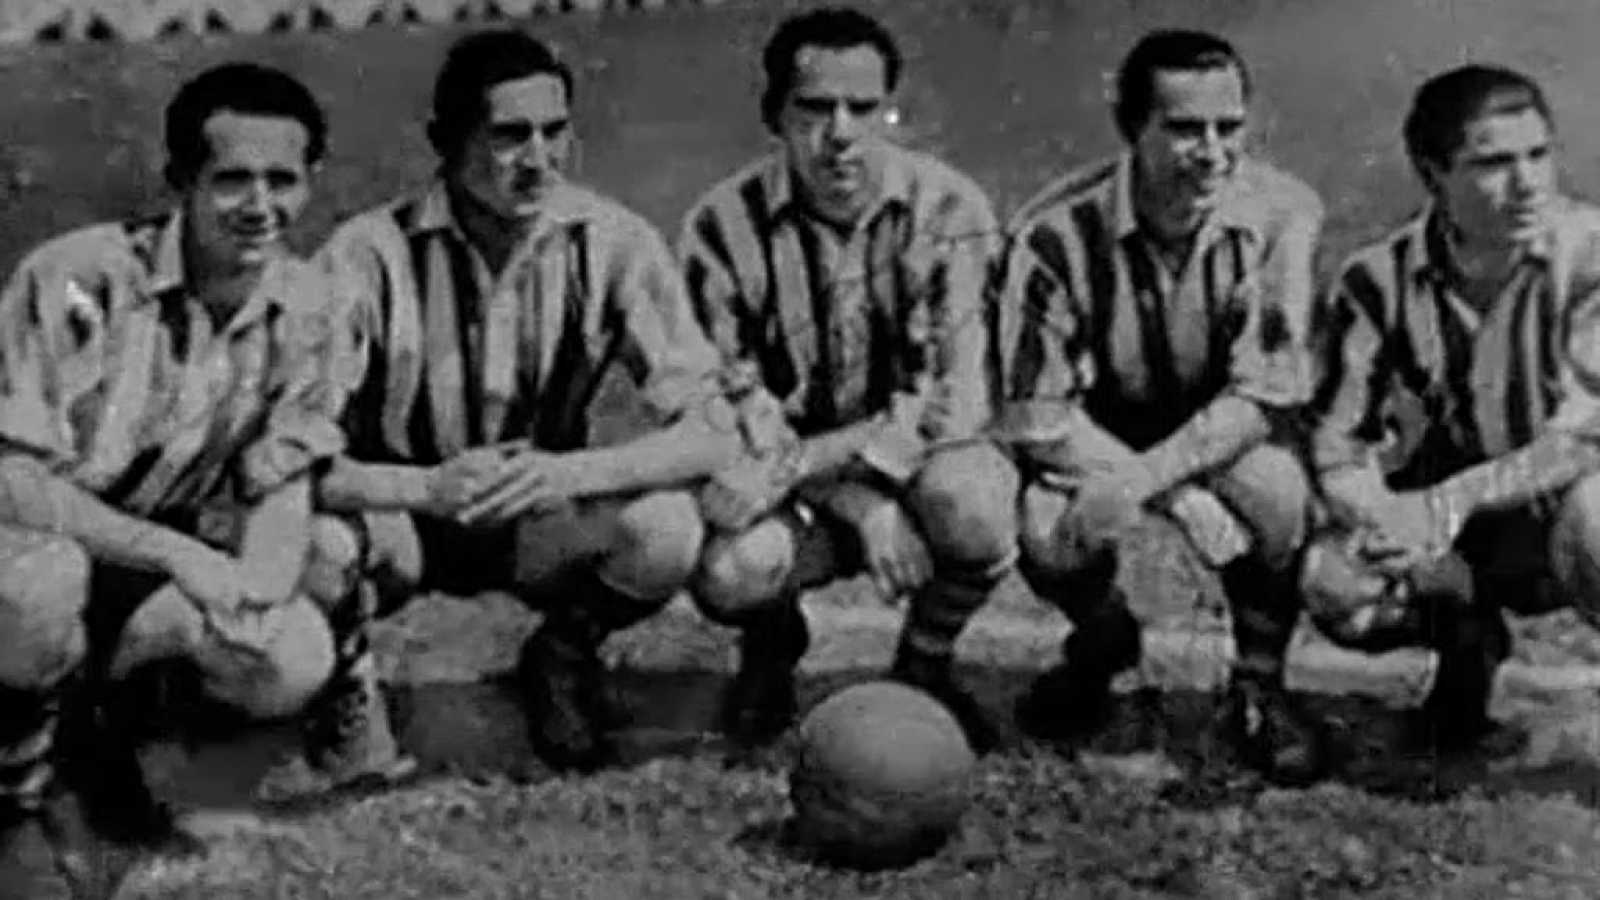 Históricos del balompié - Athletic Club de Bilbao